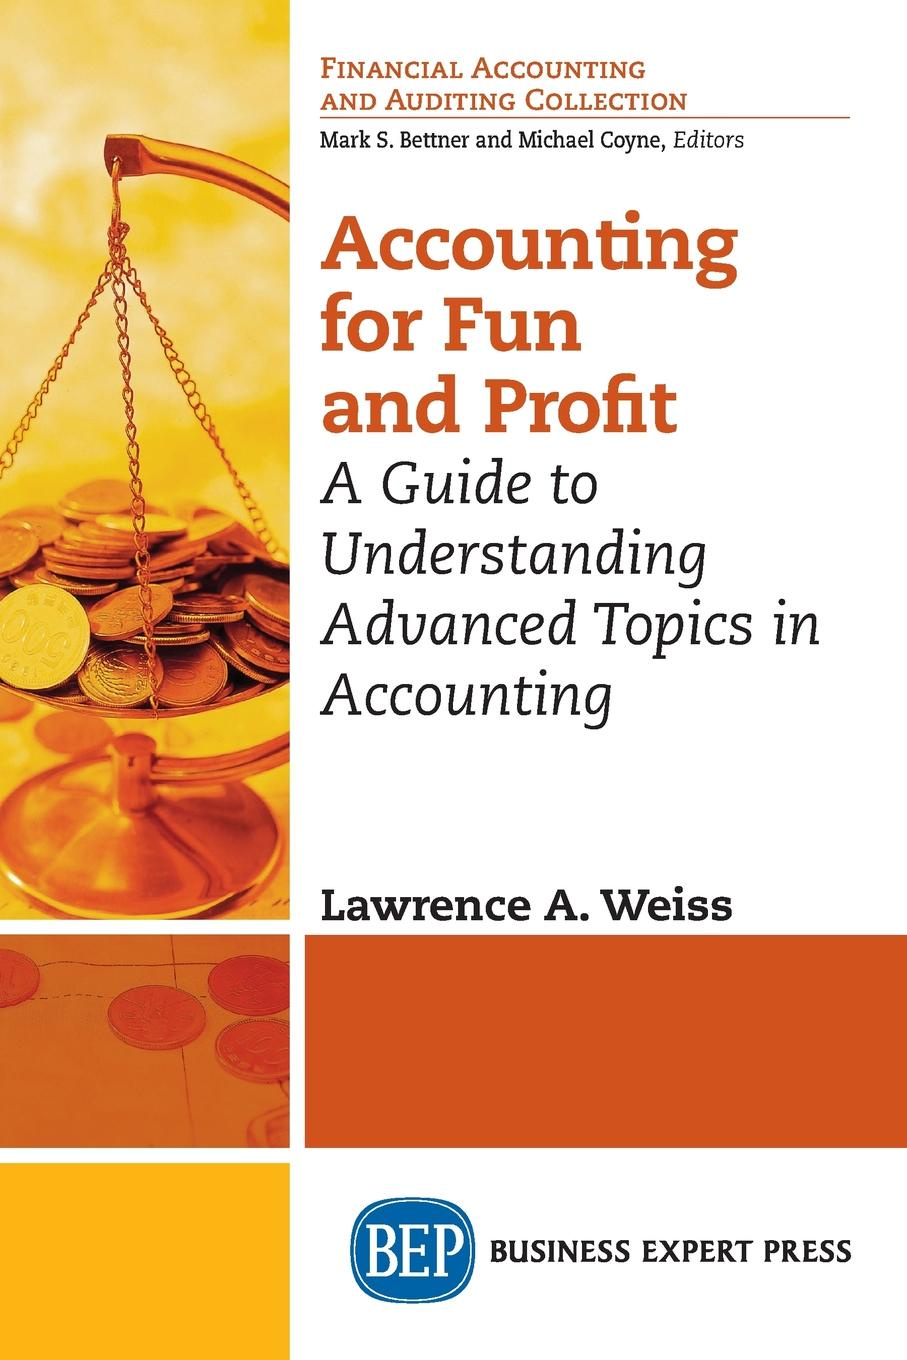 Lawrence A. Weiss Accounting for Fun and Profit. A Guide to Understanding Advanced Topics in Accounting john mattie a financial and accounting guide for not for profit organizations